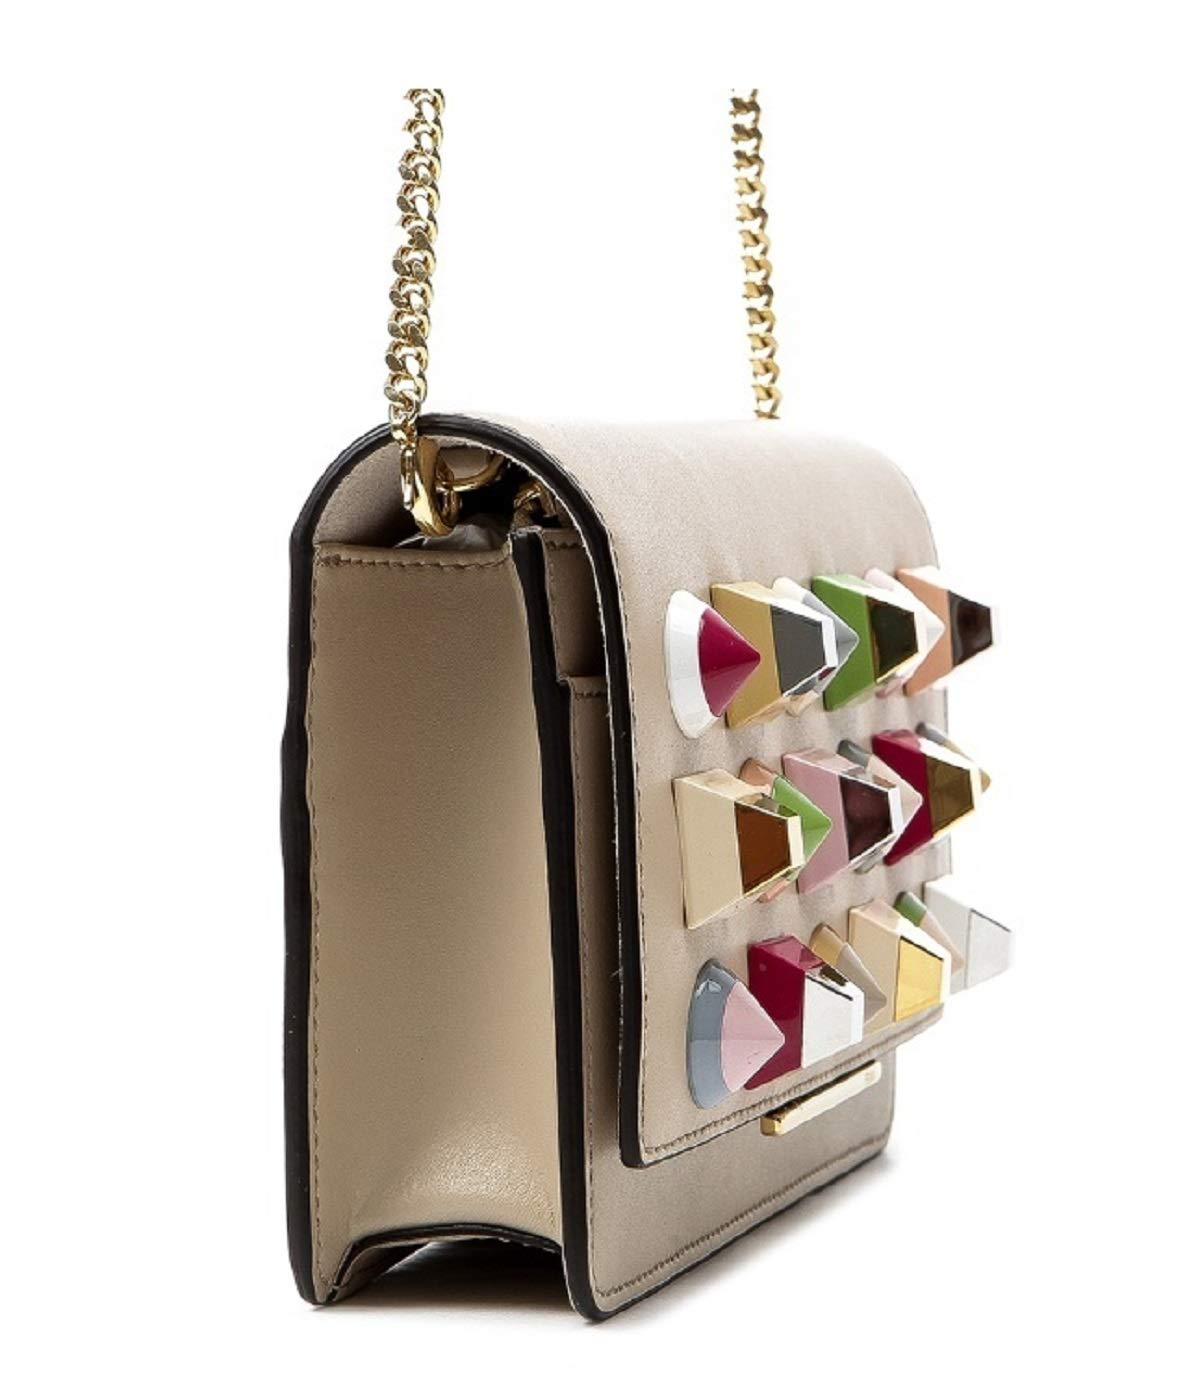 5937aebb5a95 Fendi Mini Bag Calf Leather Cream White with Multicolor Studs 8M0346 ...